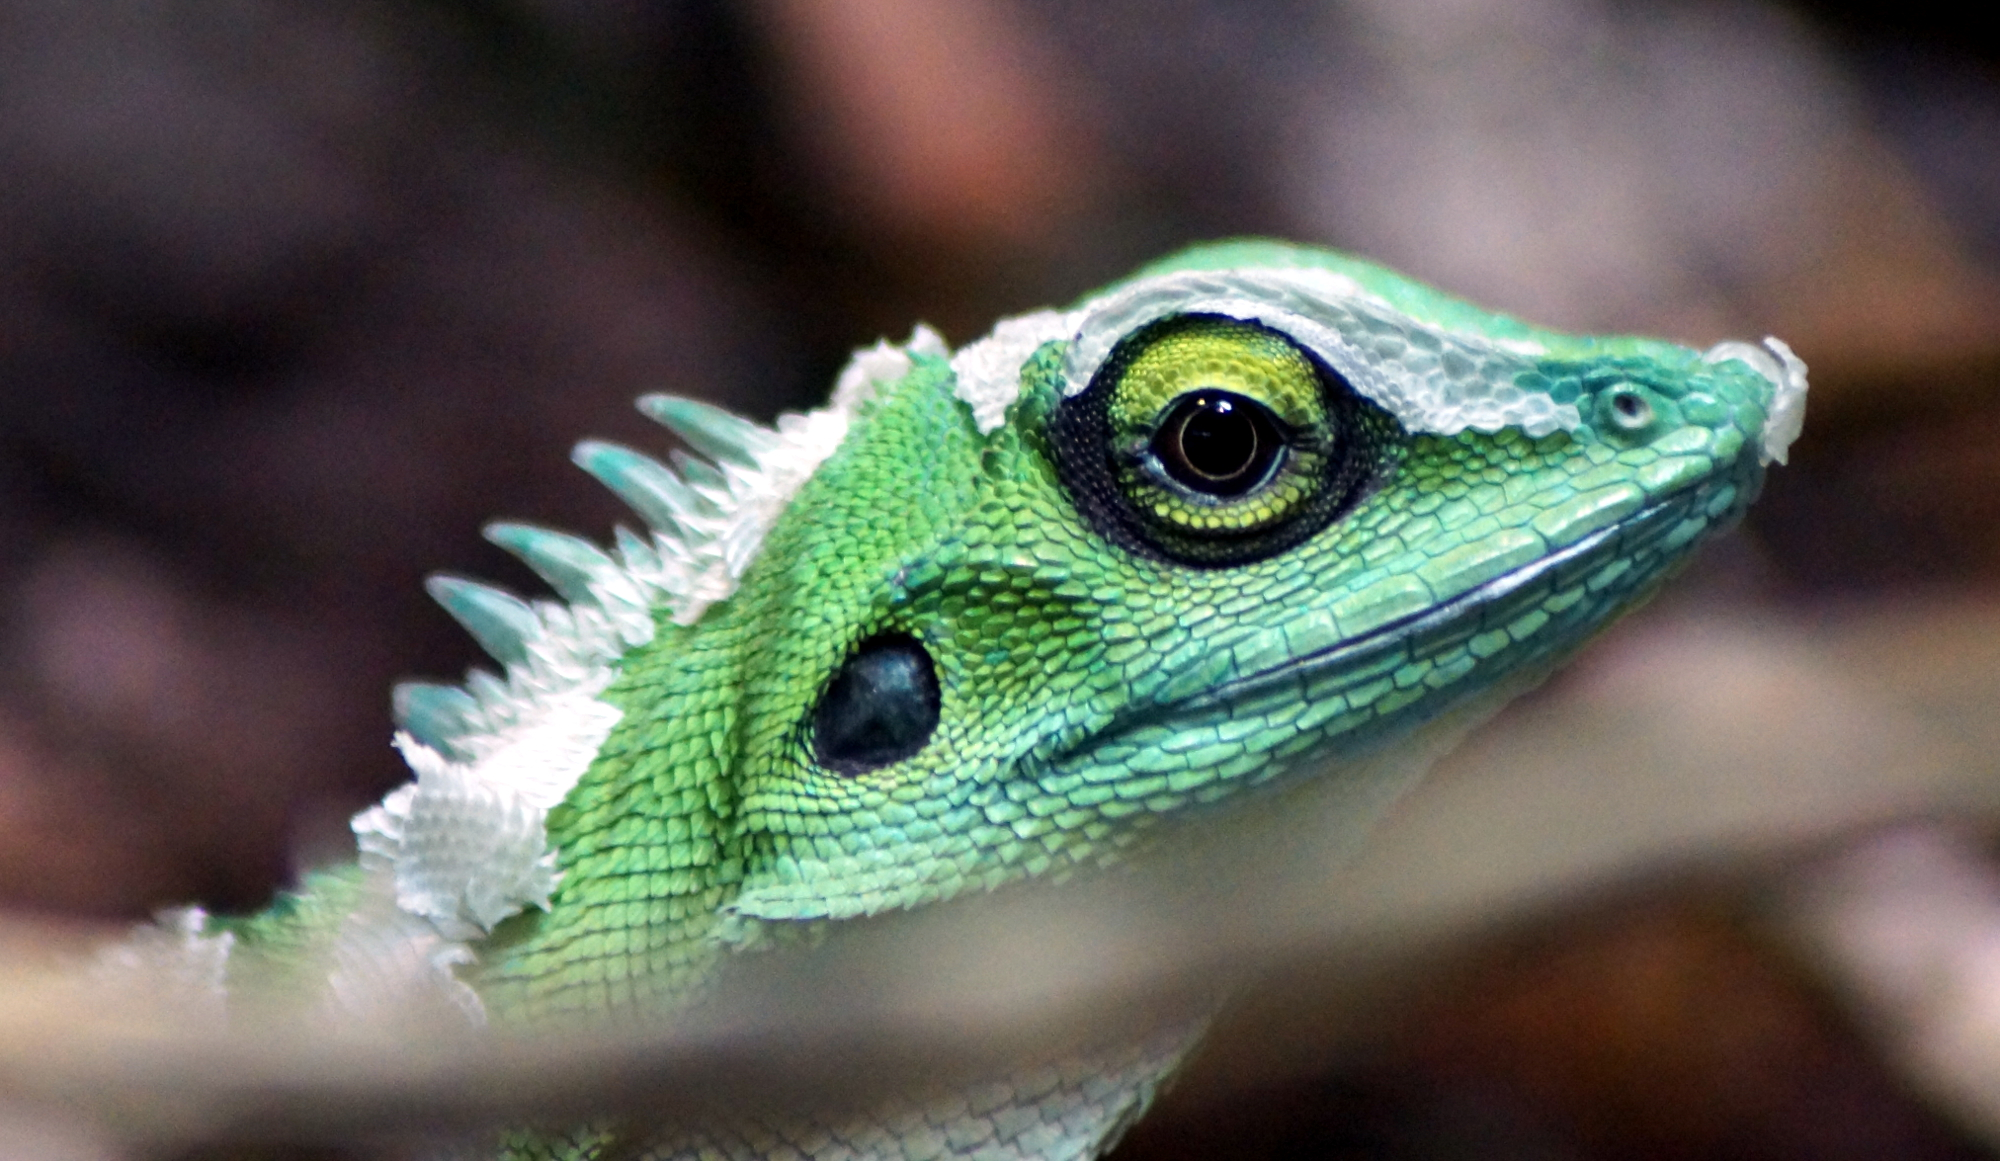 Green Crested Lizard HD Wallpaper, Background Images